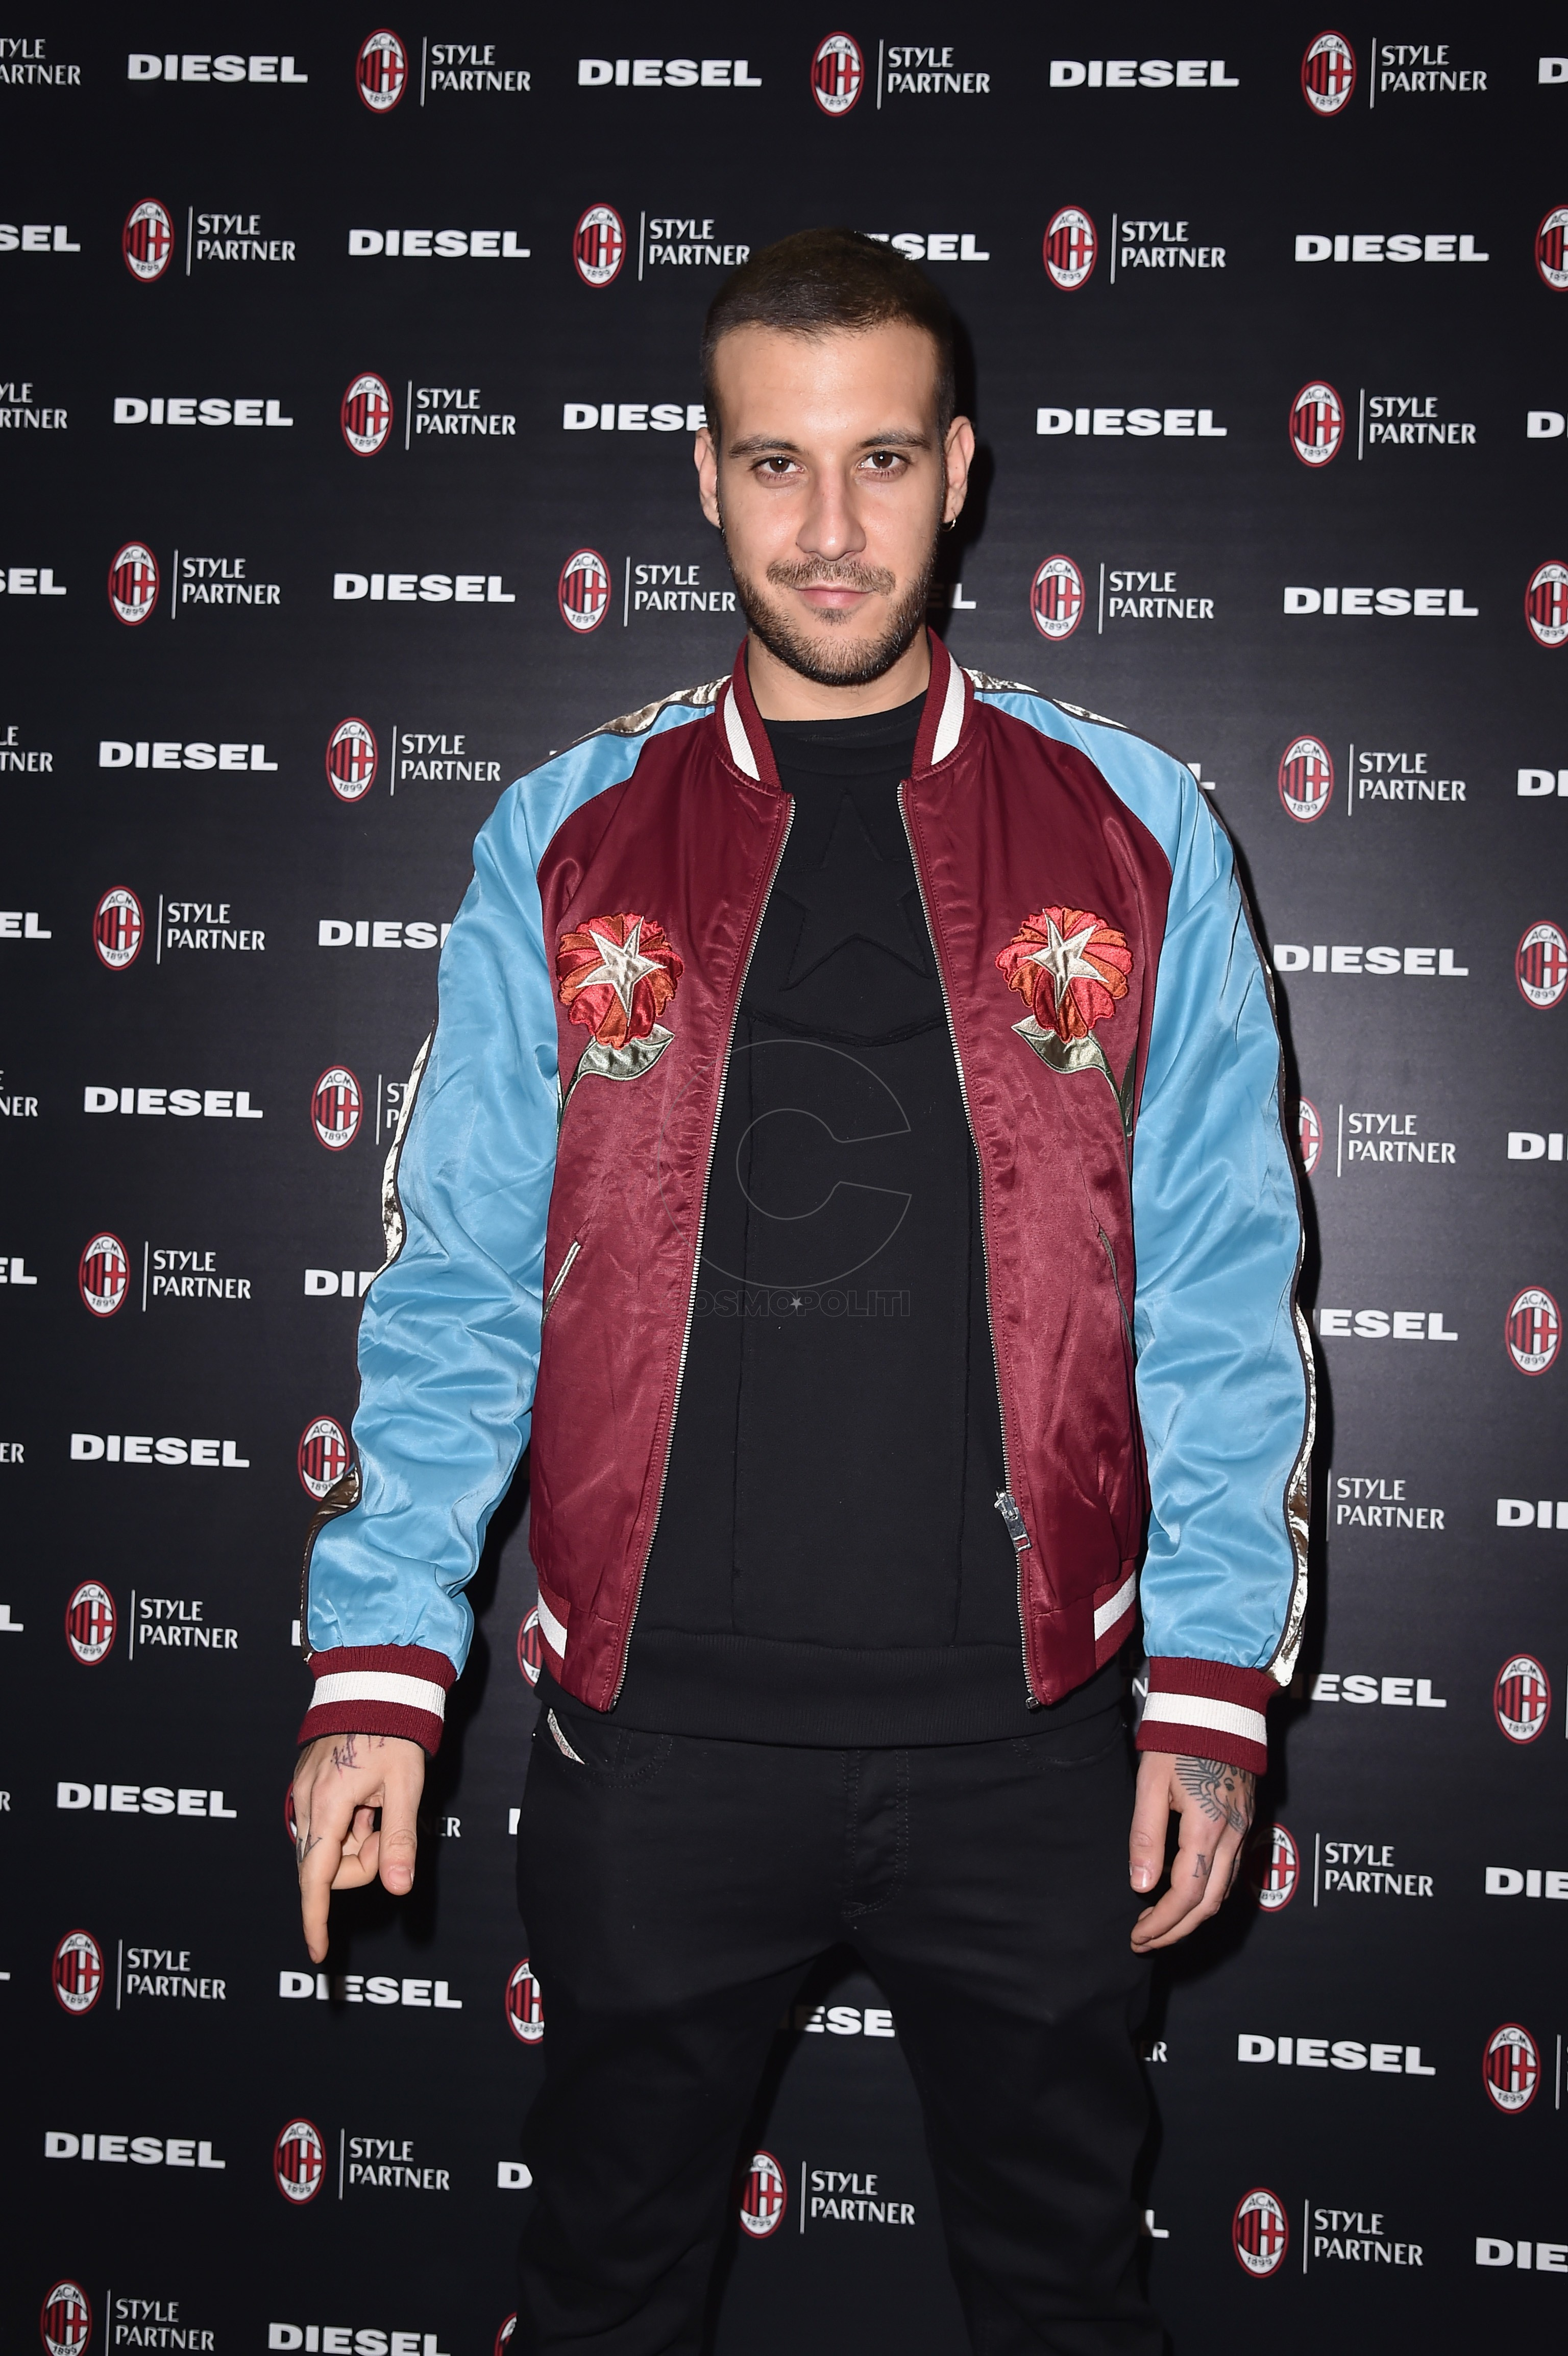 MILAN, ITALY - MARCH 14: Fred de Palma attends The New Bomber Presentation at the Diesel Store on March 14, 2017 in Milan, Italy. (Photo by Jacopo Raule/Getty Images for Diesel)